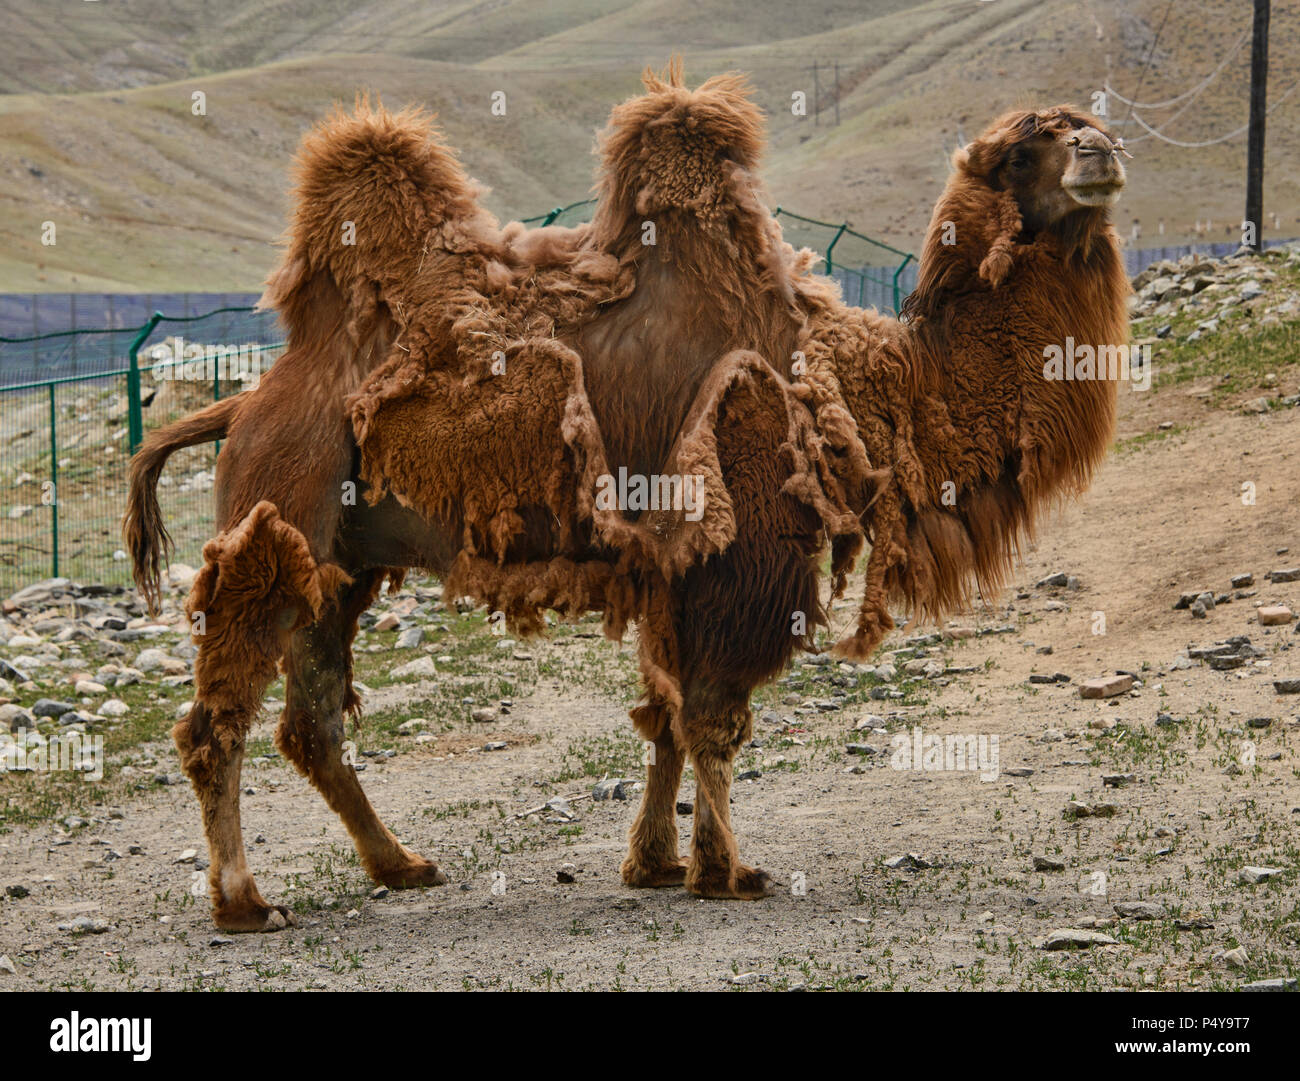 Bactrian camel herd on the Kazakh grasslands, Keketuohai, Xinjiang, China - Stock Image